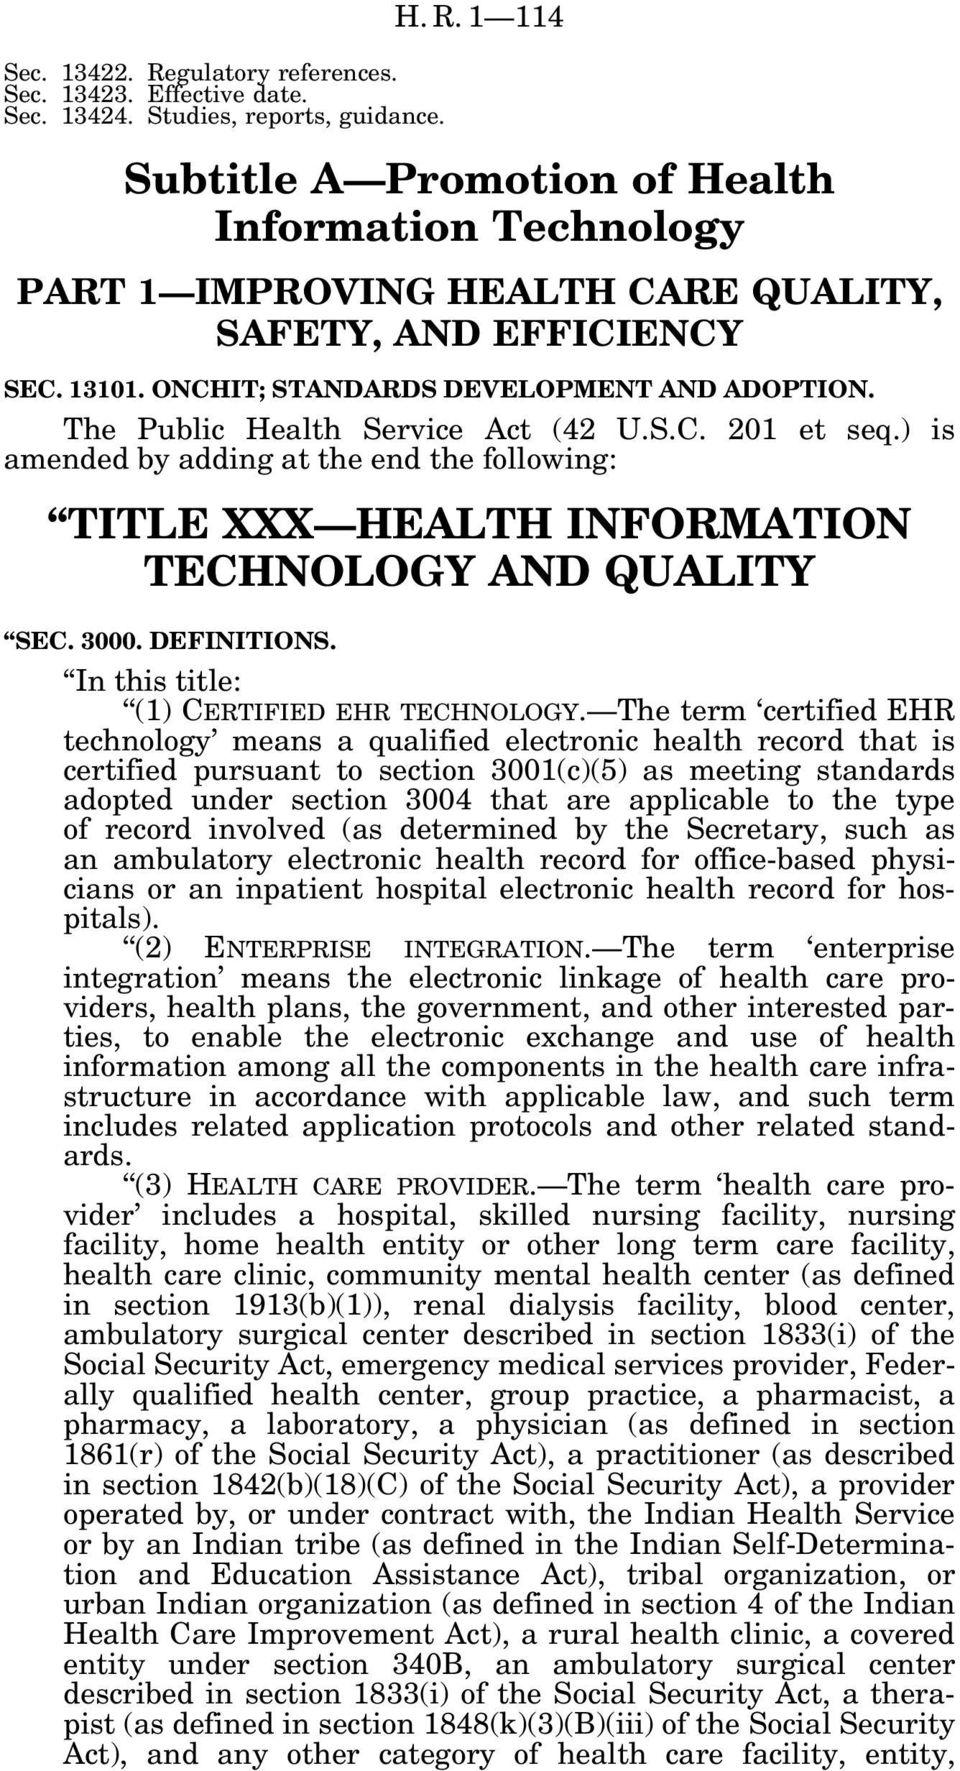 ) is amended by adding at the end the following: TITLE XXX HEALTH INFORMATION TECHNOLOGY AND QUALITY SEC. 3000. DEFINITIONS. In this title: (1) CERTIFIED EHR TECHNOLOGY.